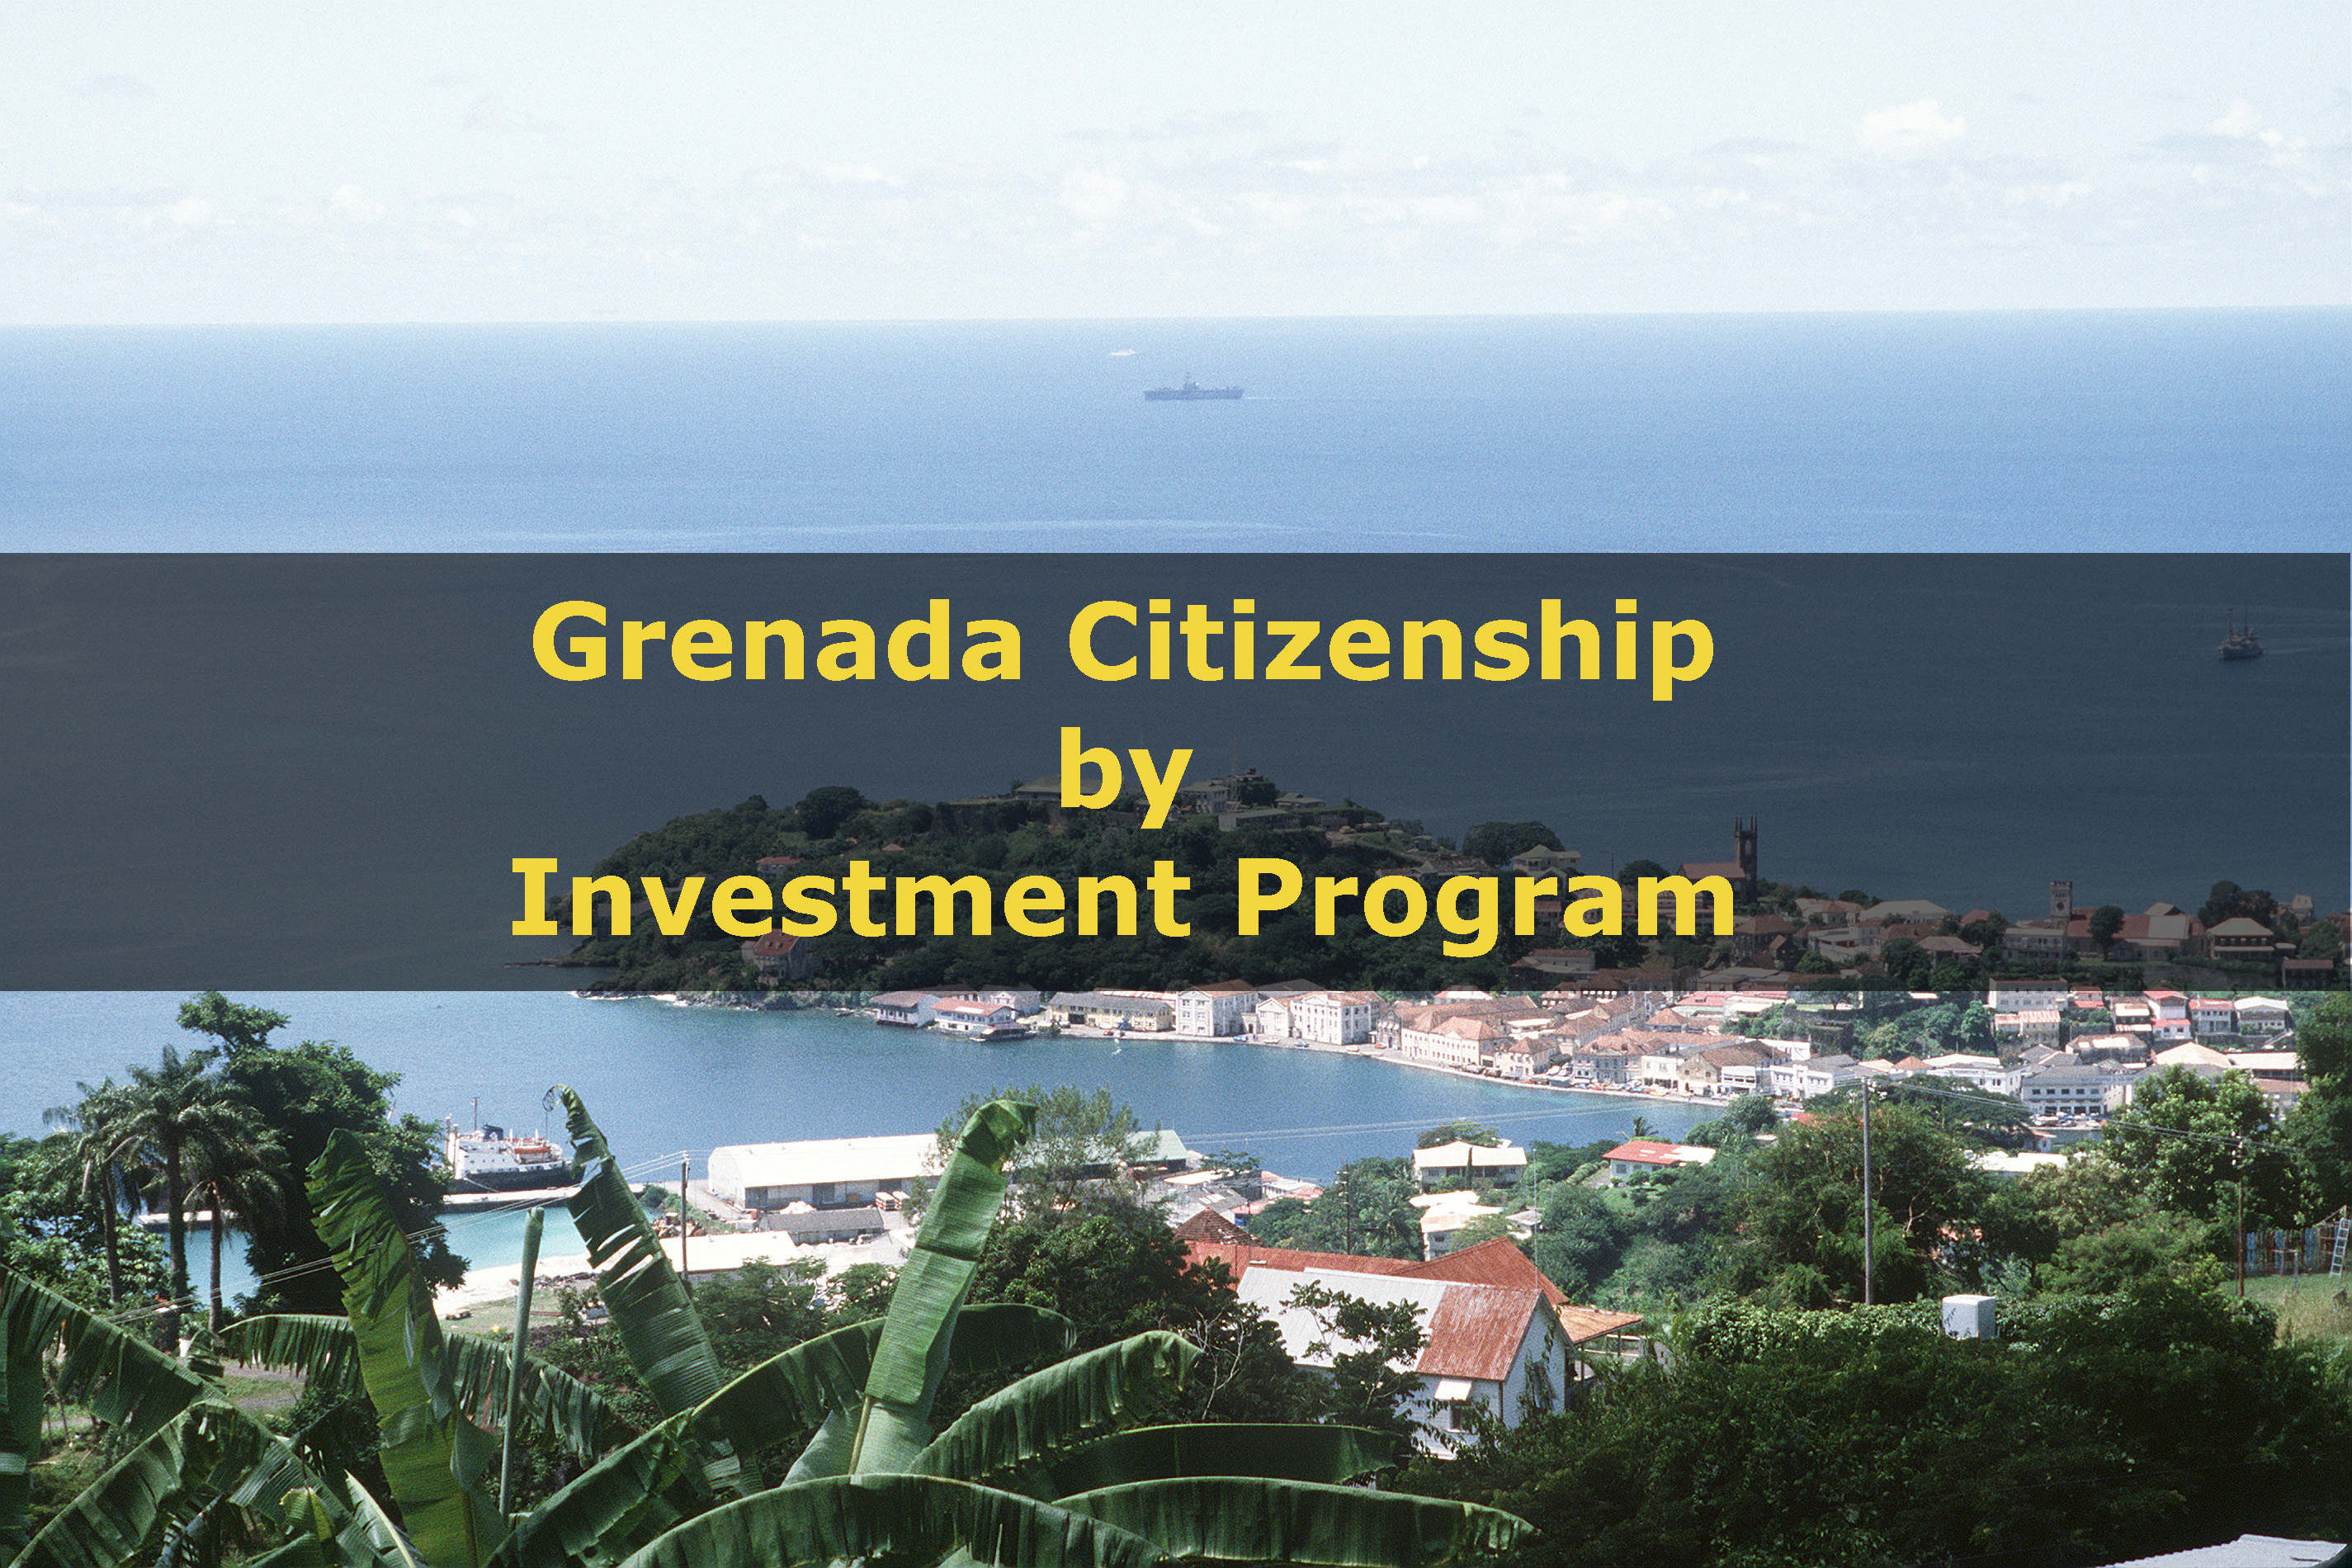 Grenada citizenship investment program